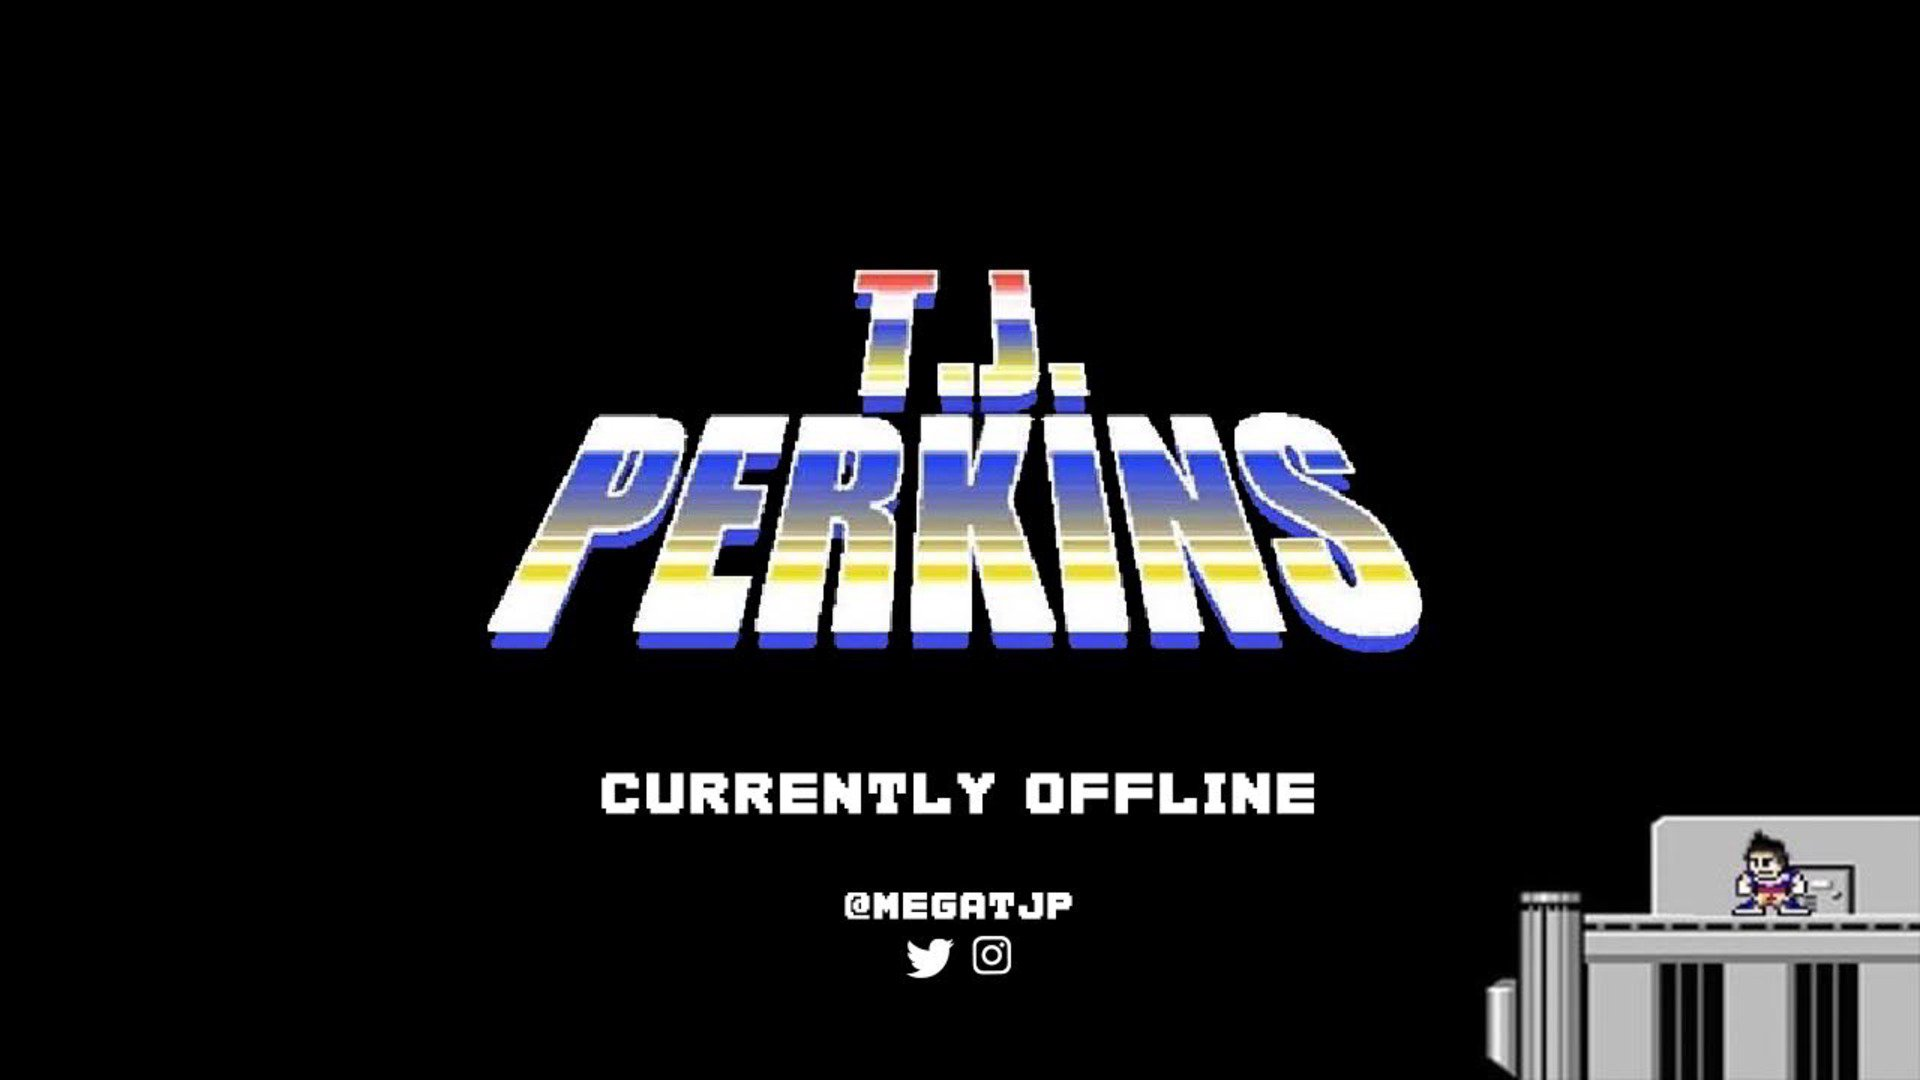 Streamer's offline cover page